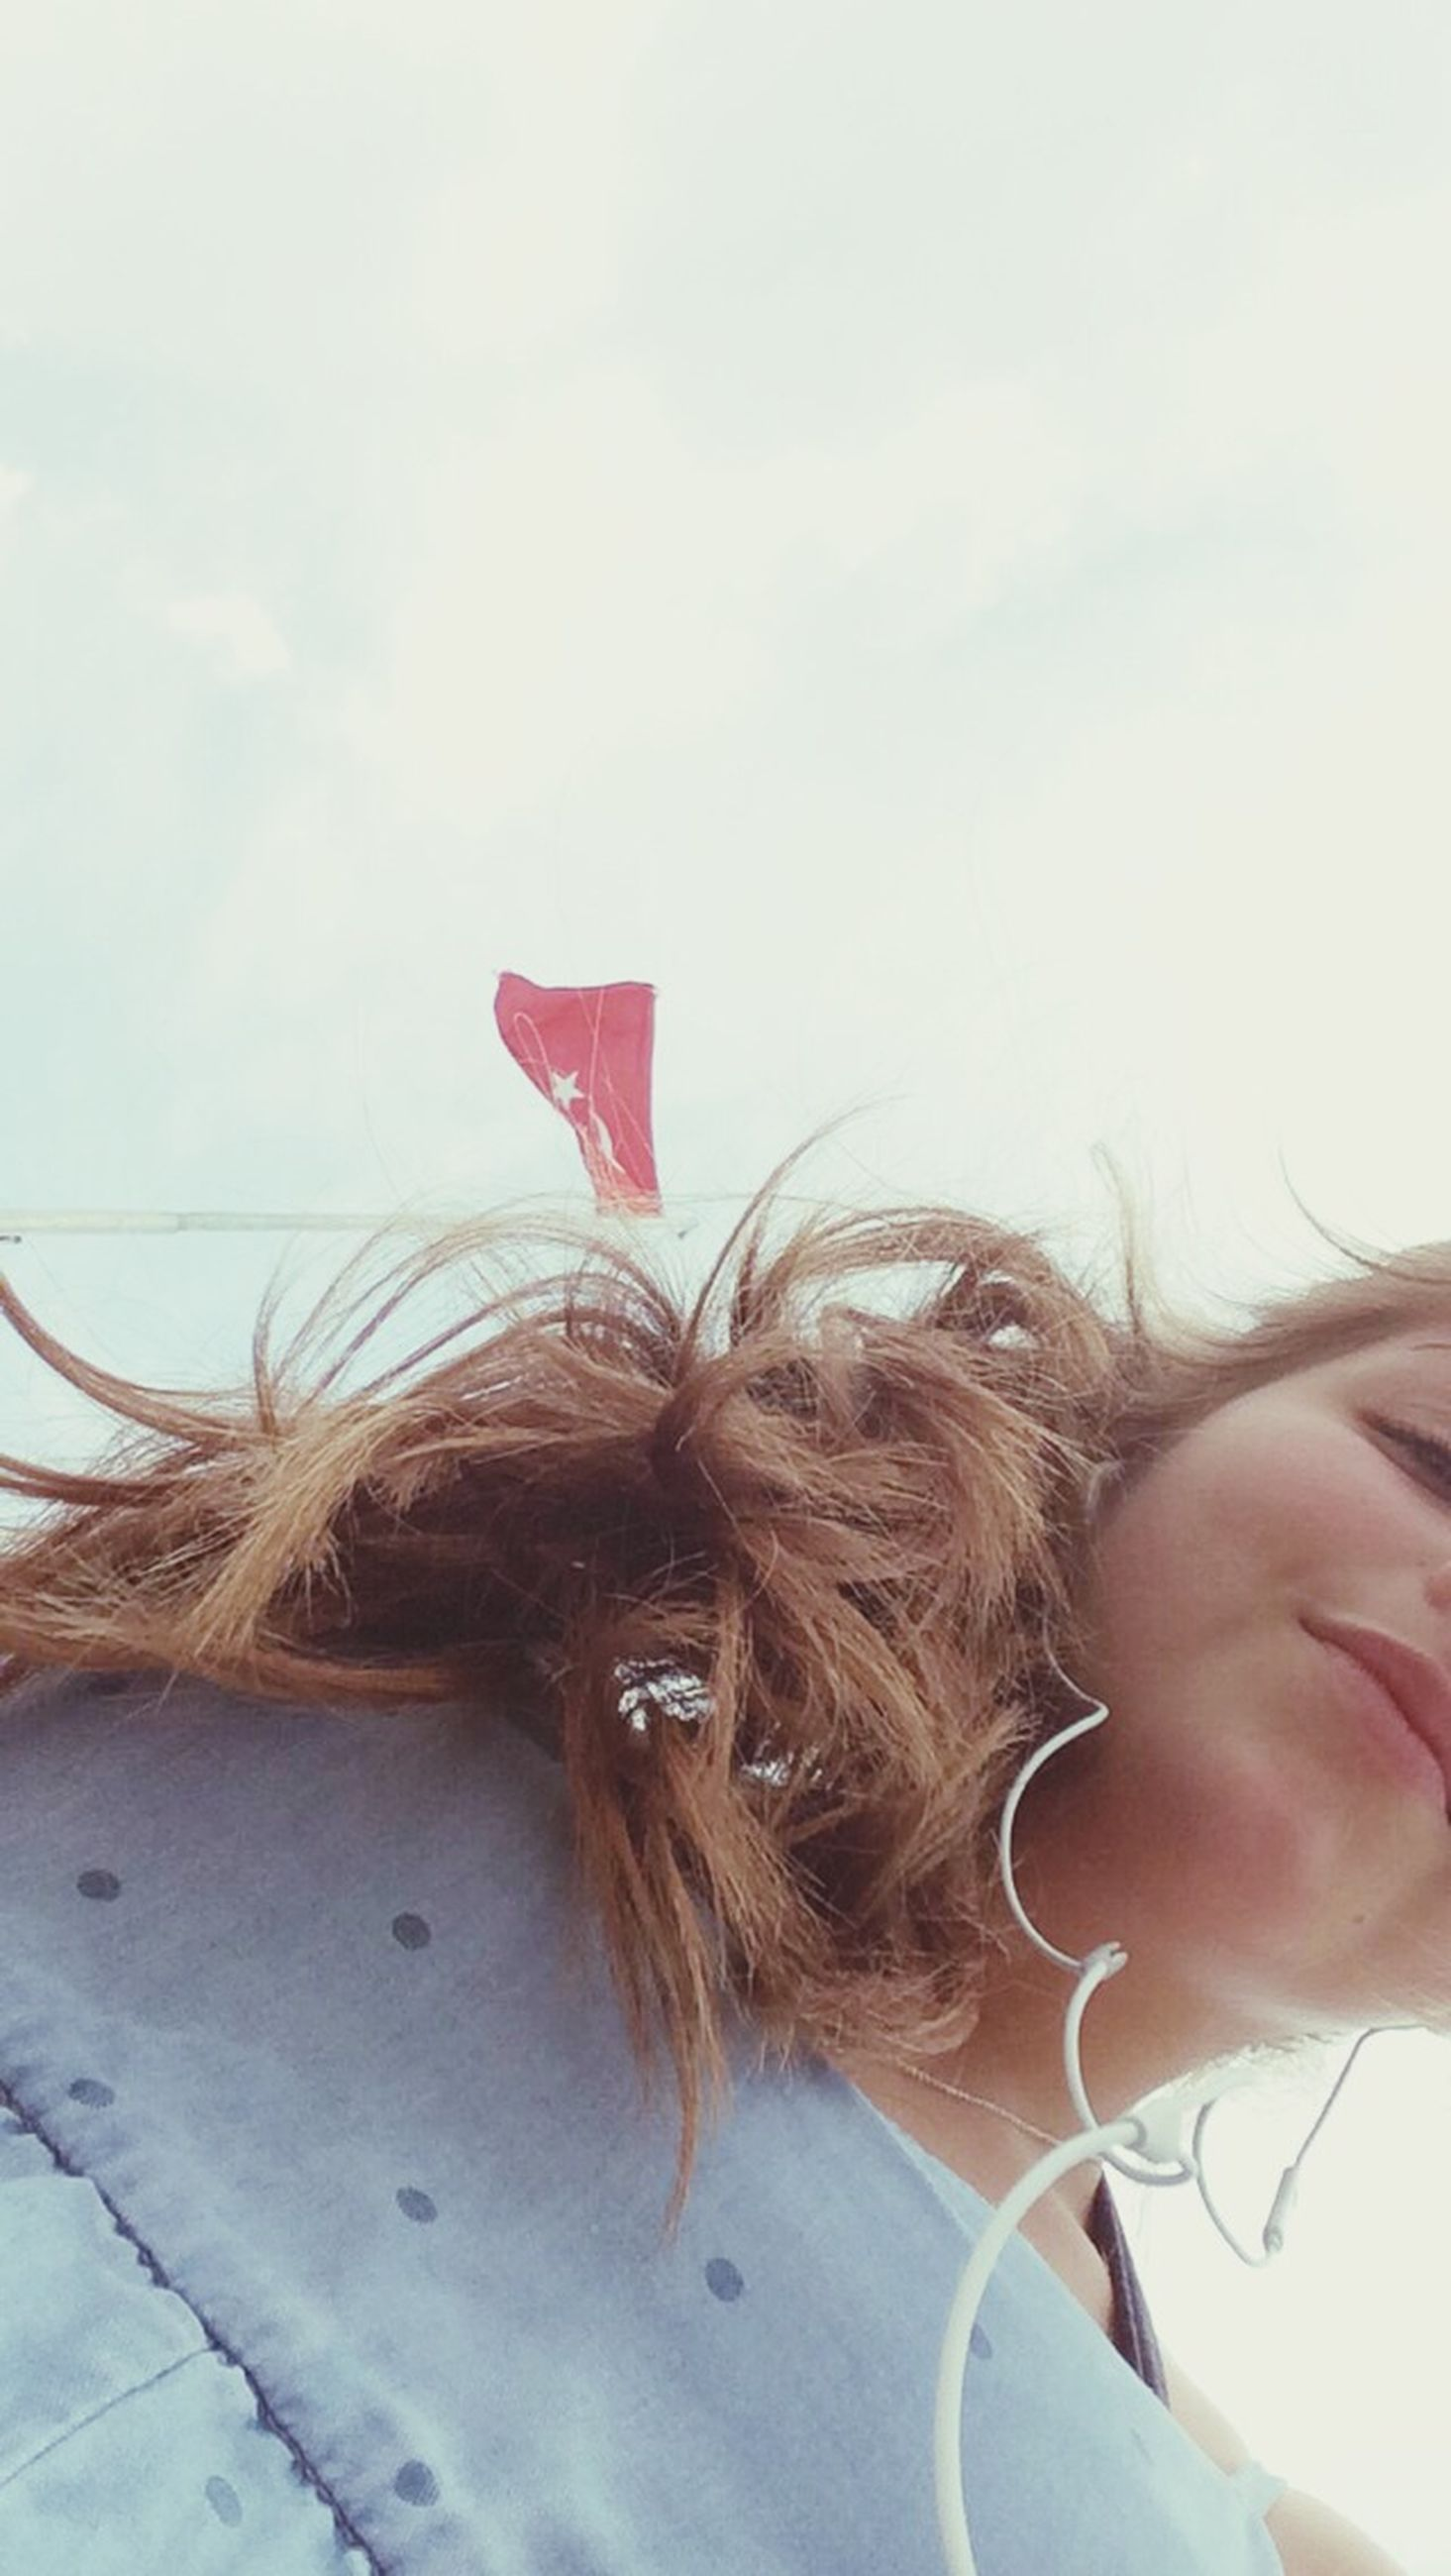 lifestyles, leisure activity, young women, sky, young adult, headshot, person, part of, long hair, cropped, close-up, holding, day, wind